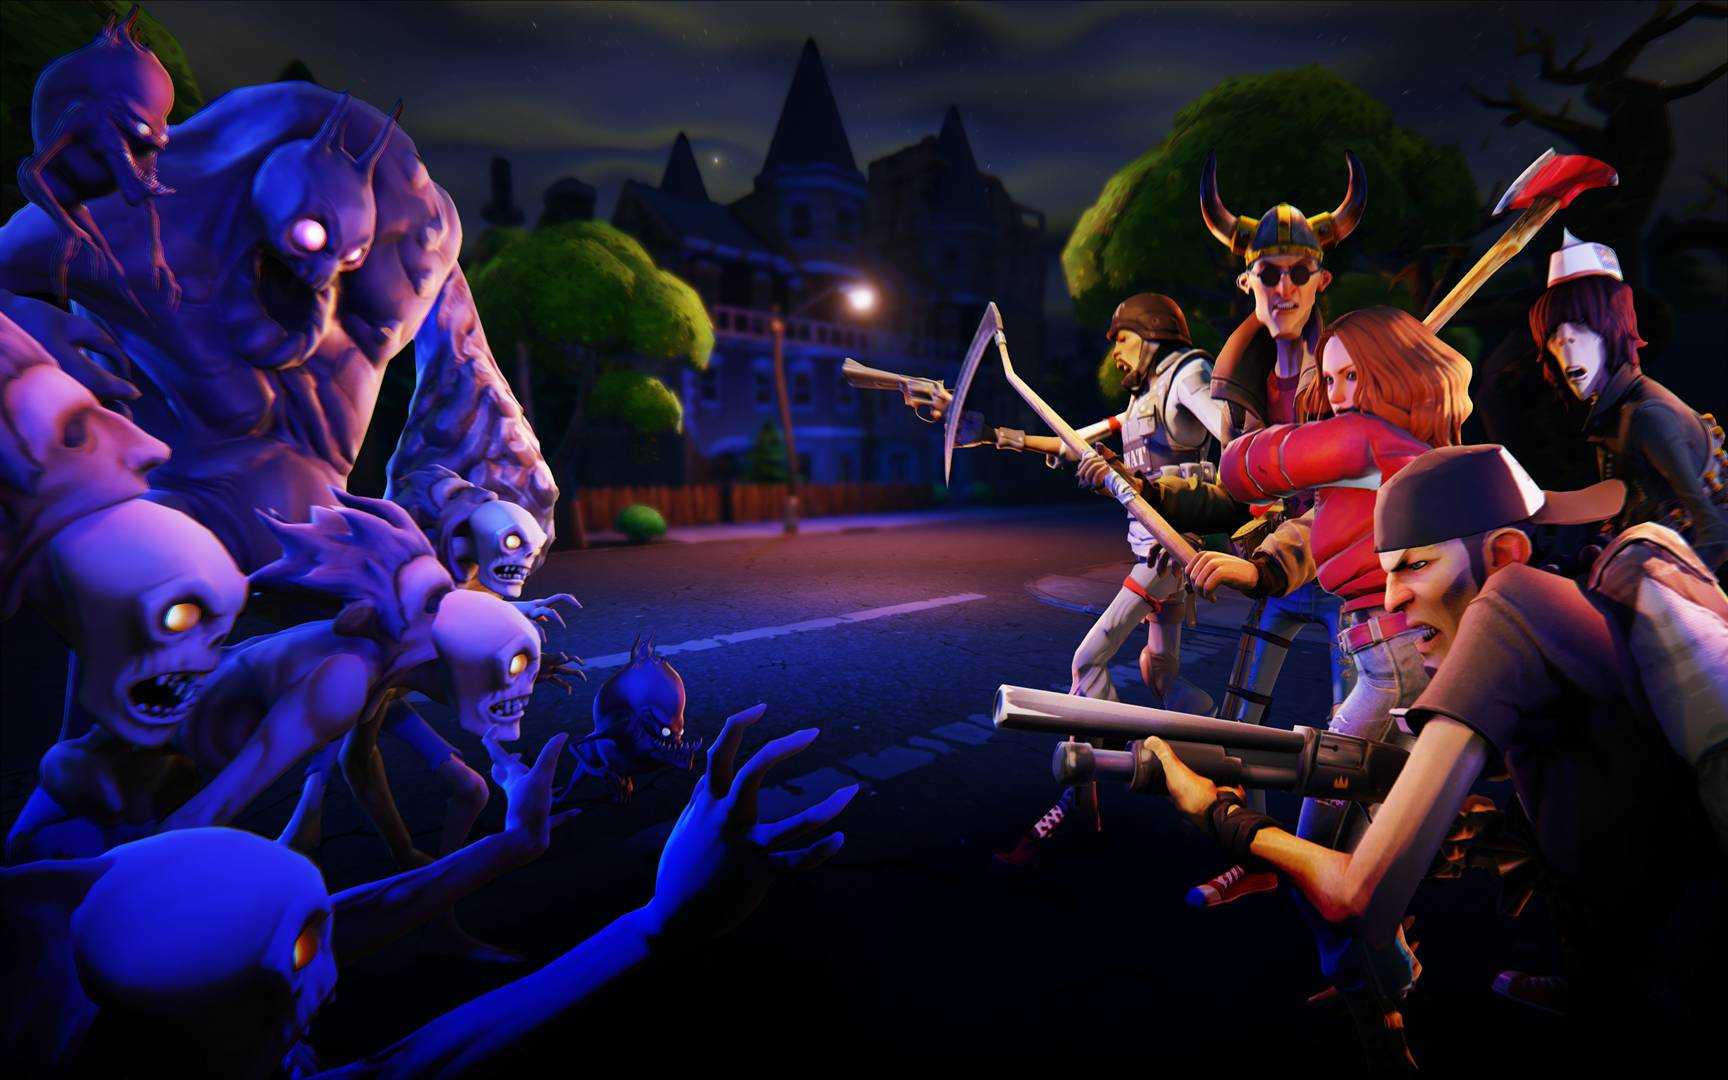 epic games fortnite wallpapers « GamingBolt: Video Game News